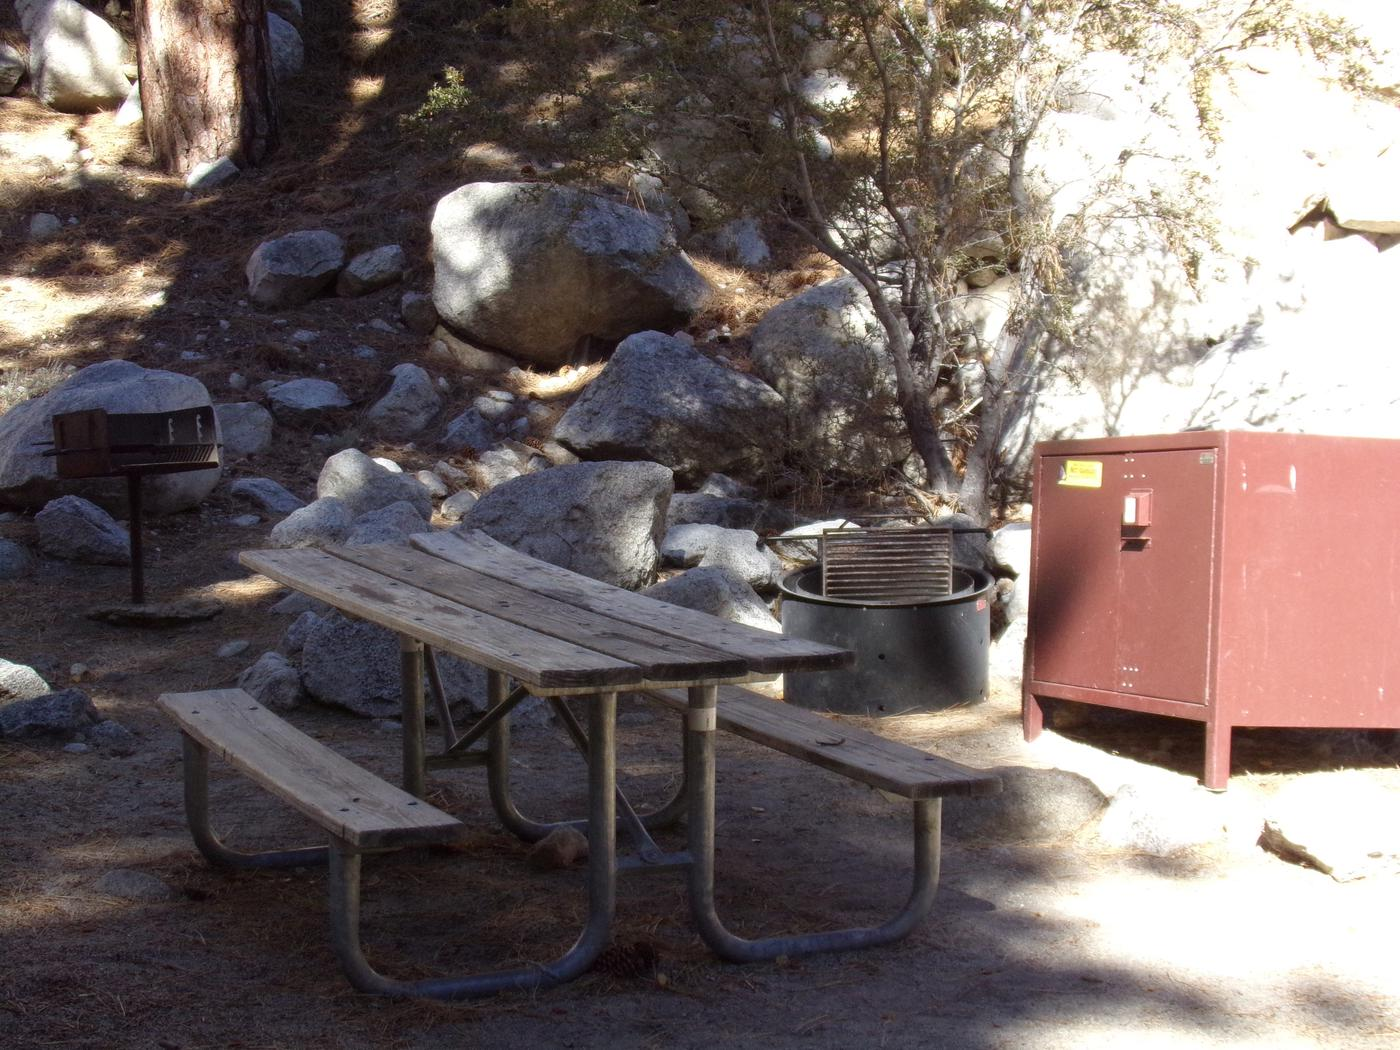 Mt. Whitney Portal Campground site #21 featuring the mountain top setting picnic area with fire pit.